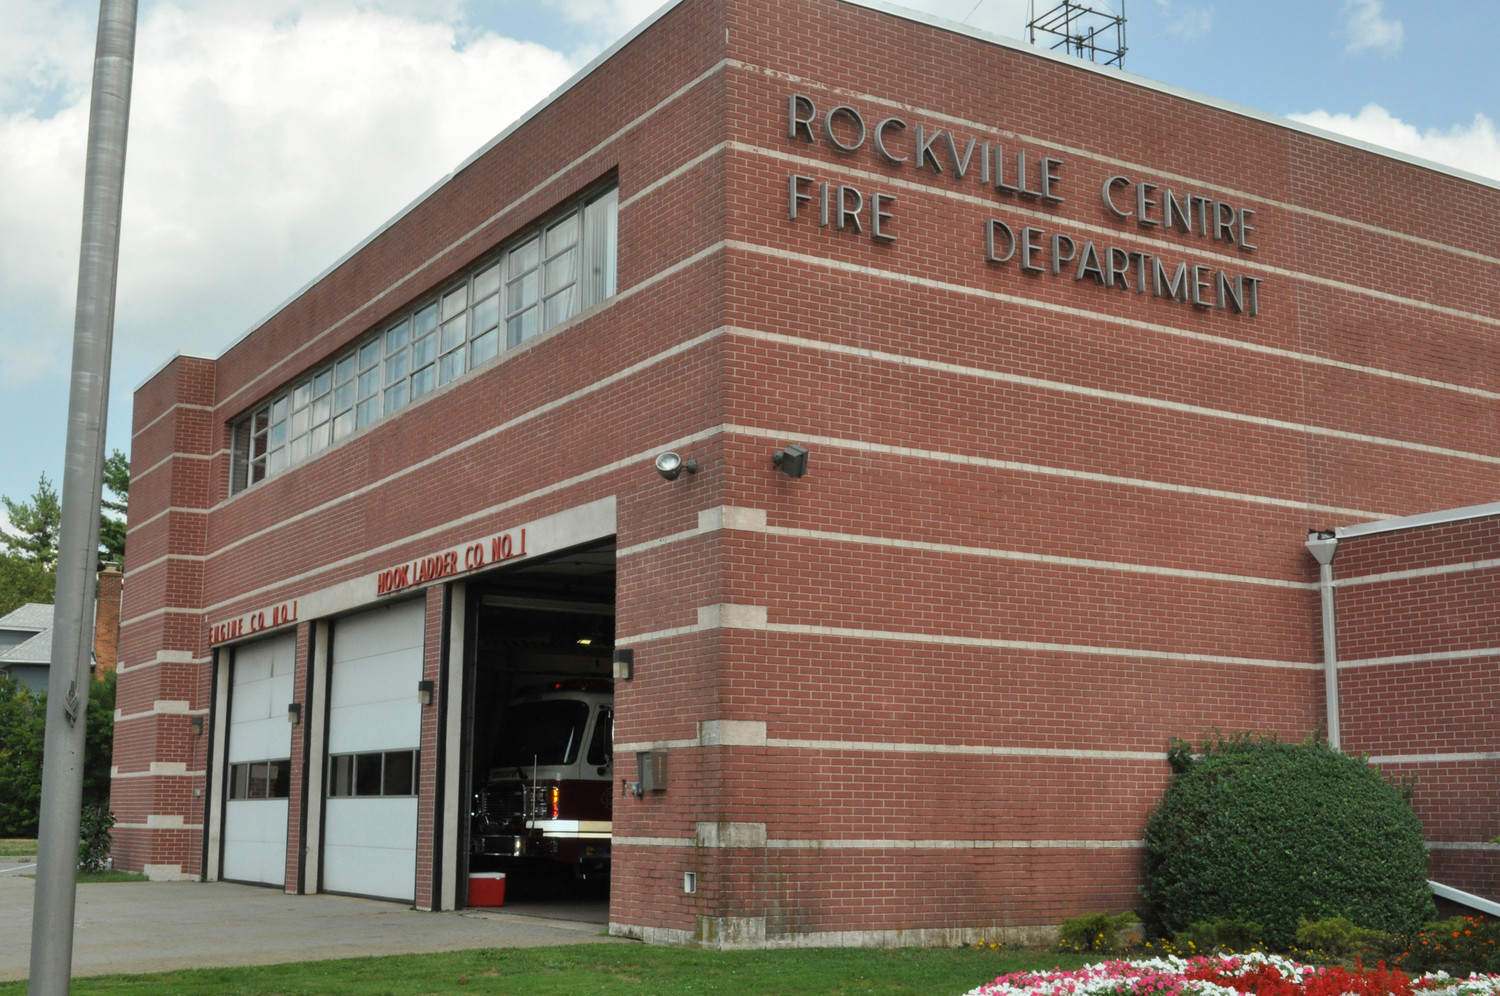 The firehouse at 103 Maple Ave. is one of two that require extensive upgrades, according to Rockville Centre Fire Chief Brian Cook.